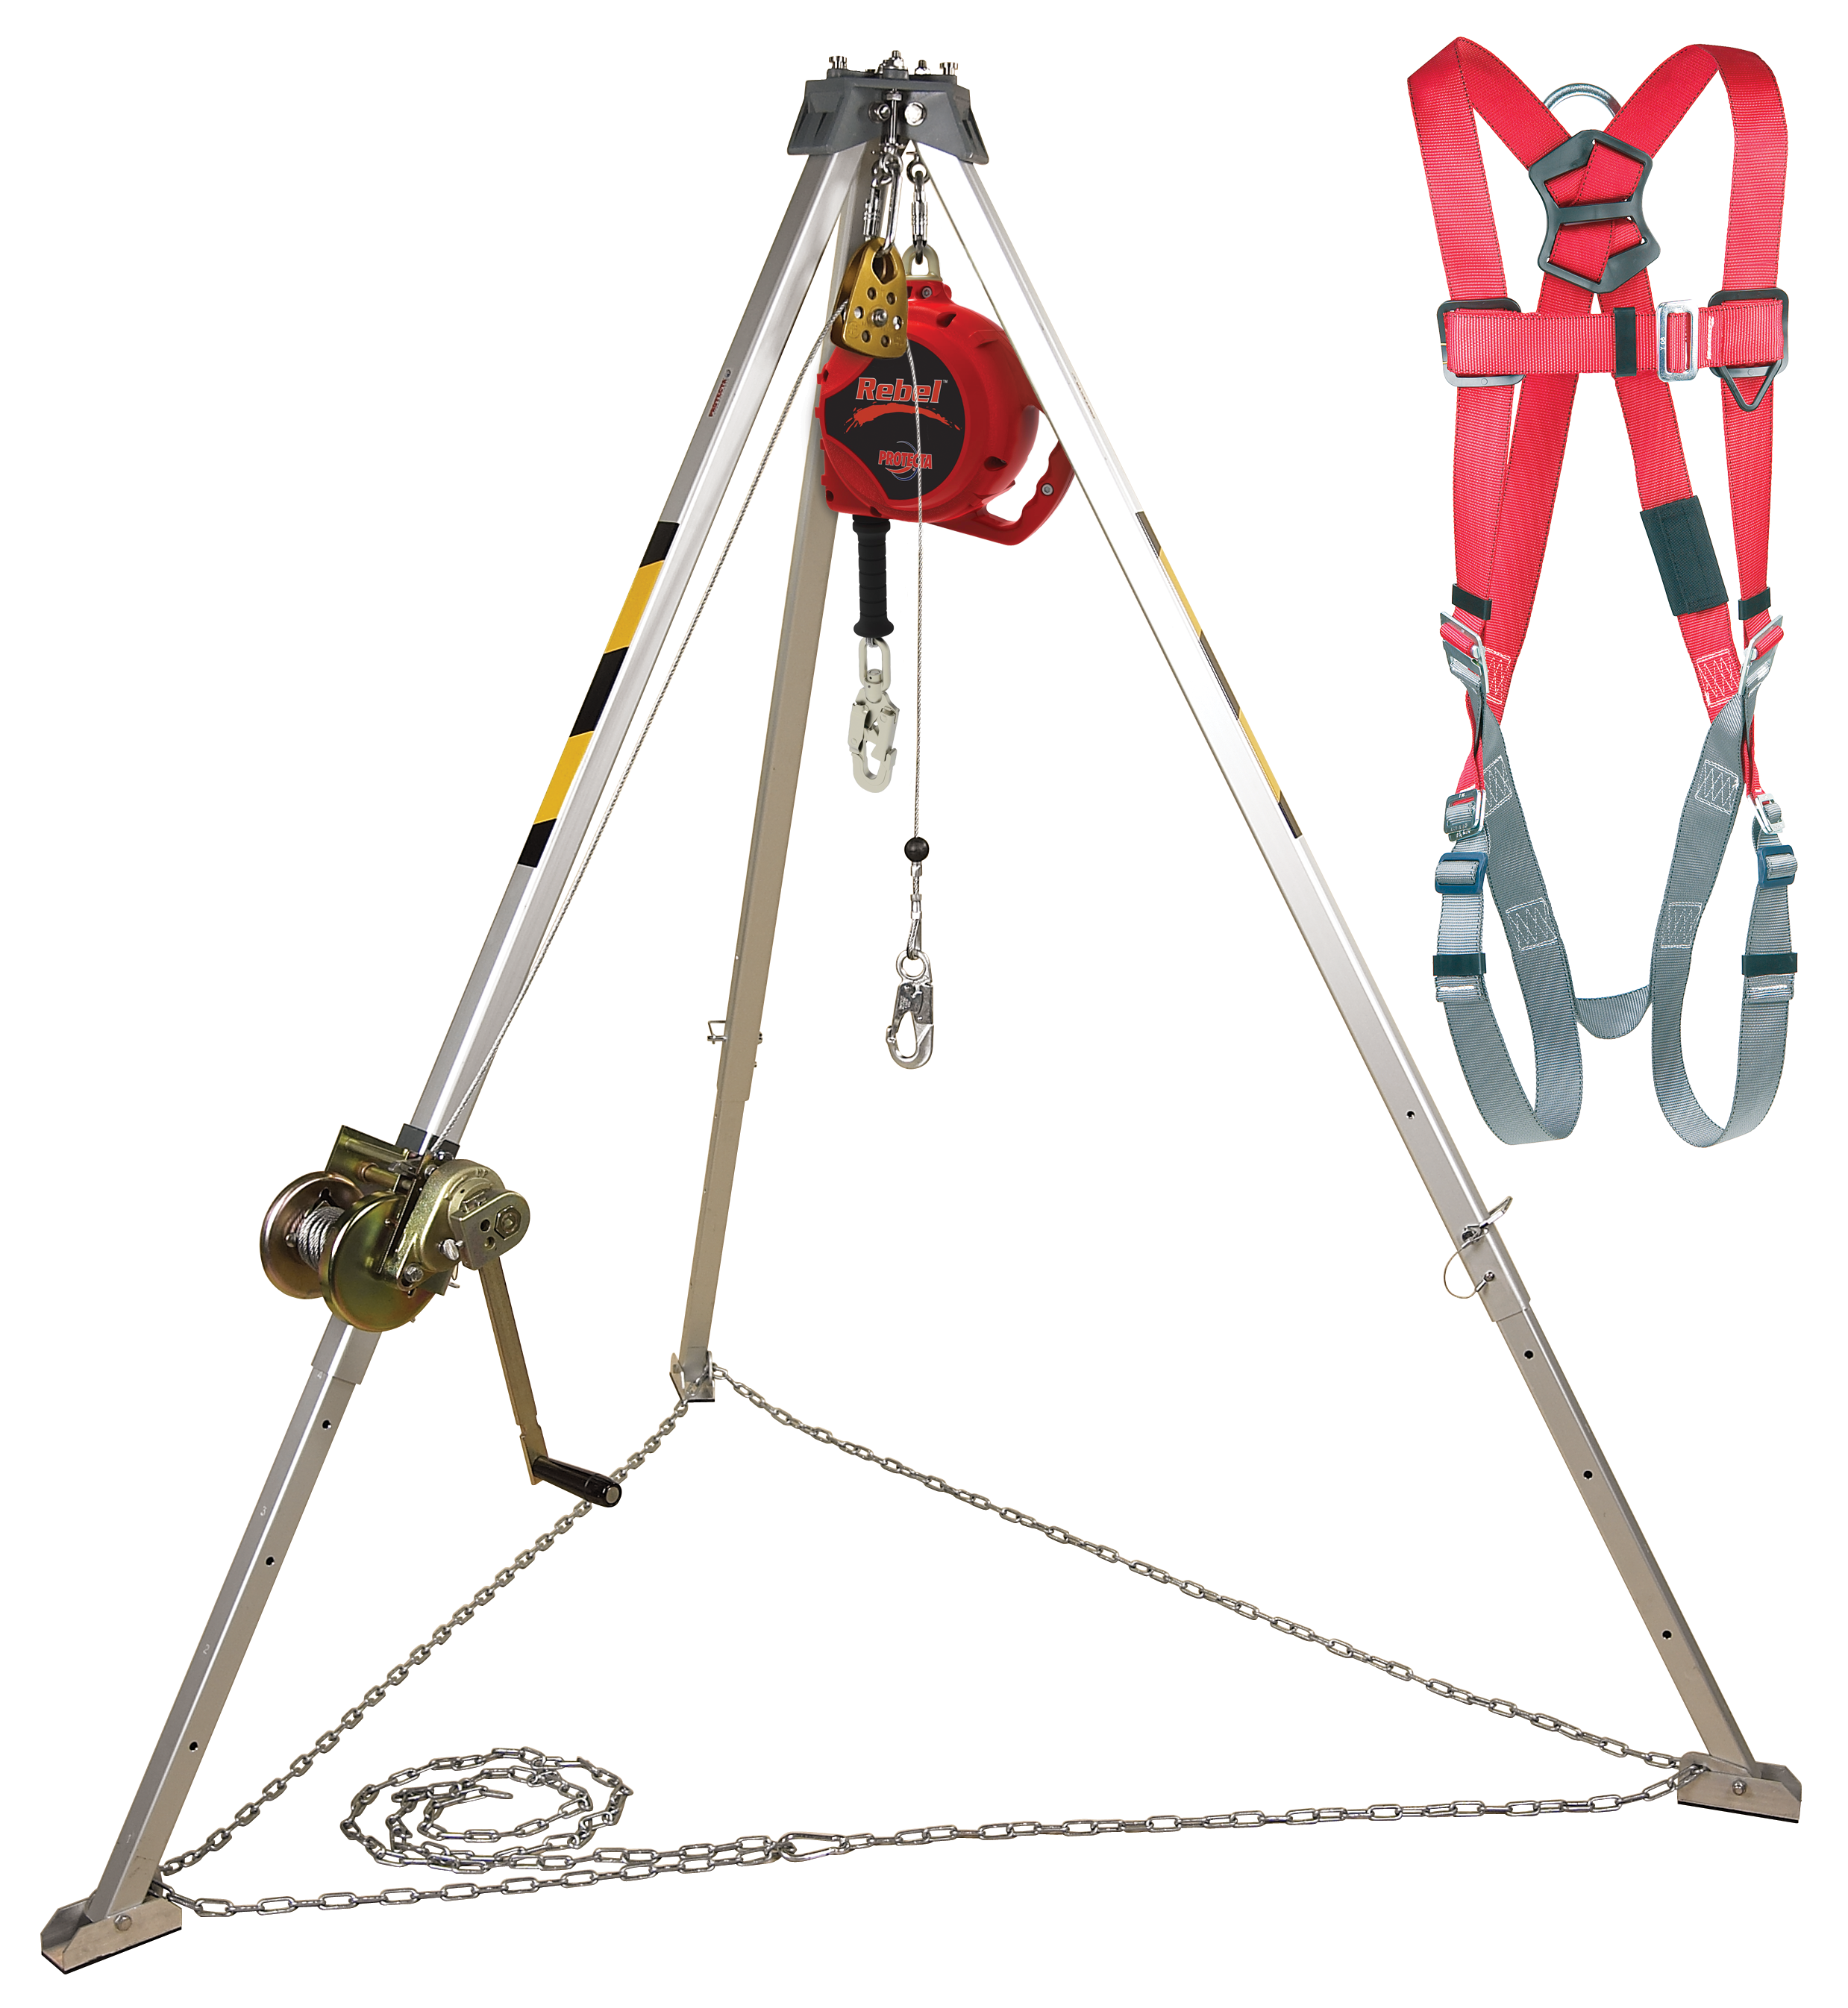 Protecta PRO Confined Space System with Winch, SRL, and Harness